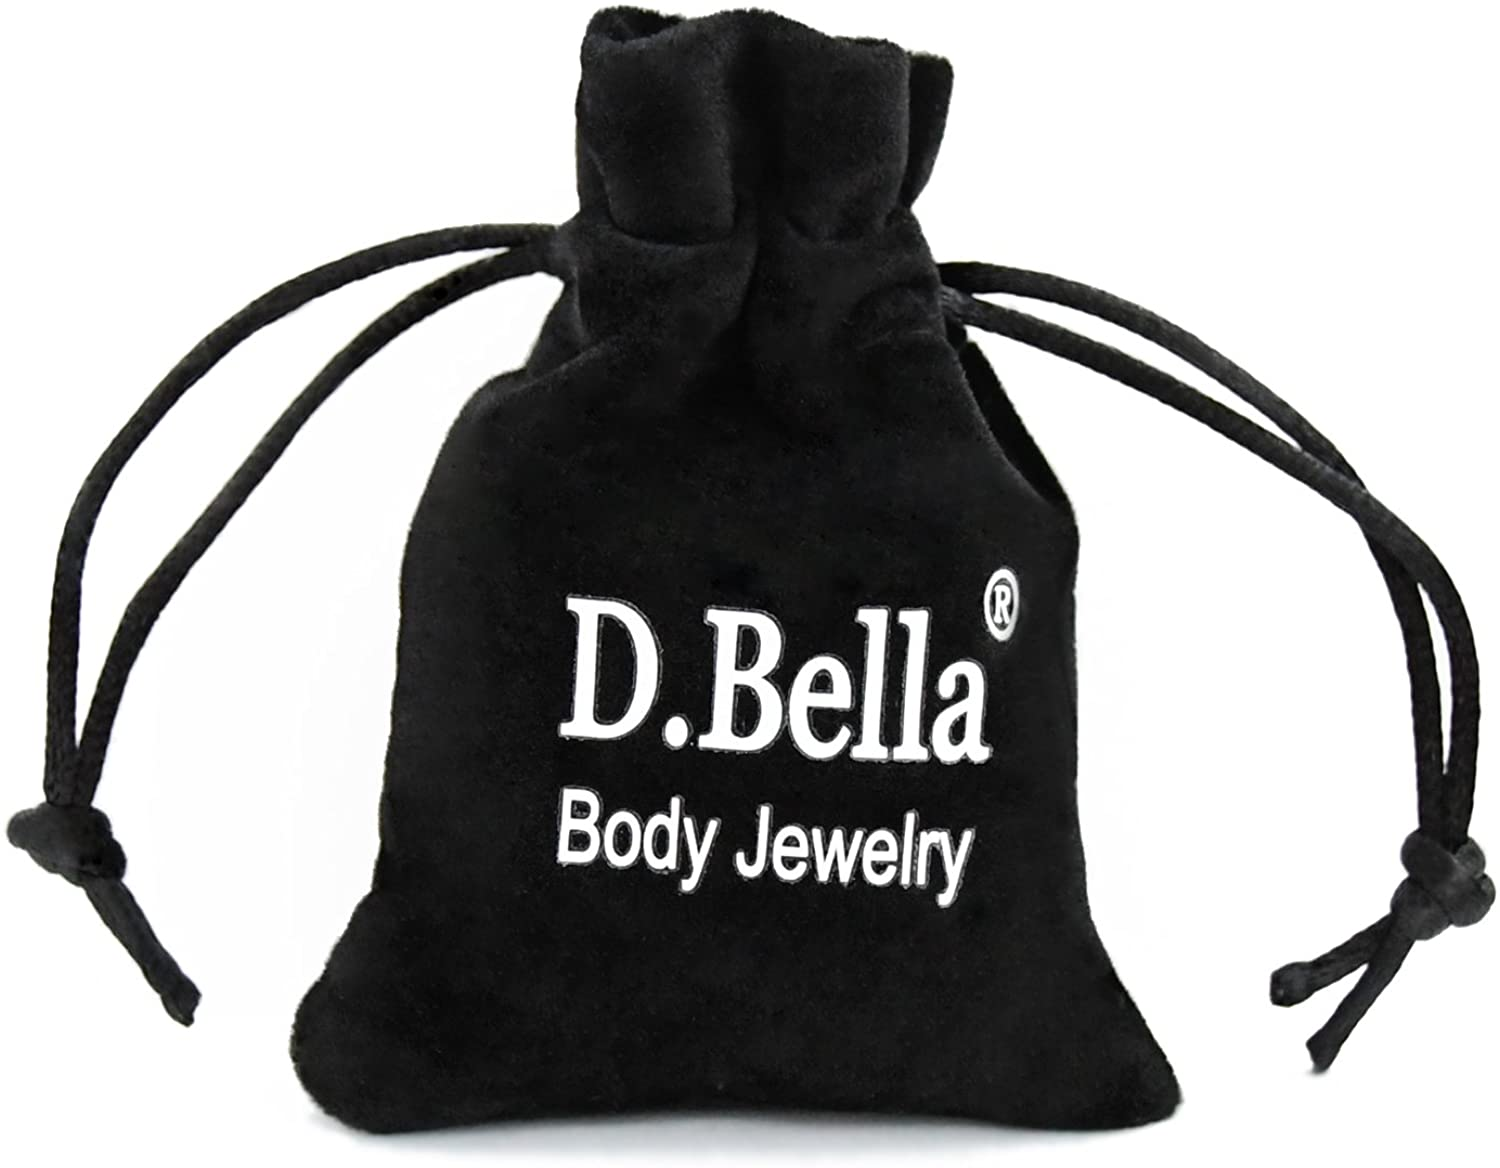 D.Bella 20G Nose Rings Hoop L-Shaped Nose Rings Studs Screw Stainless Steel CZ Different Shape Top 21pcs Nose Piercing Jewelry Set